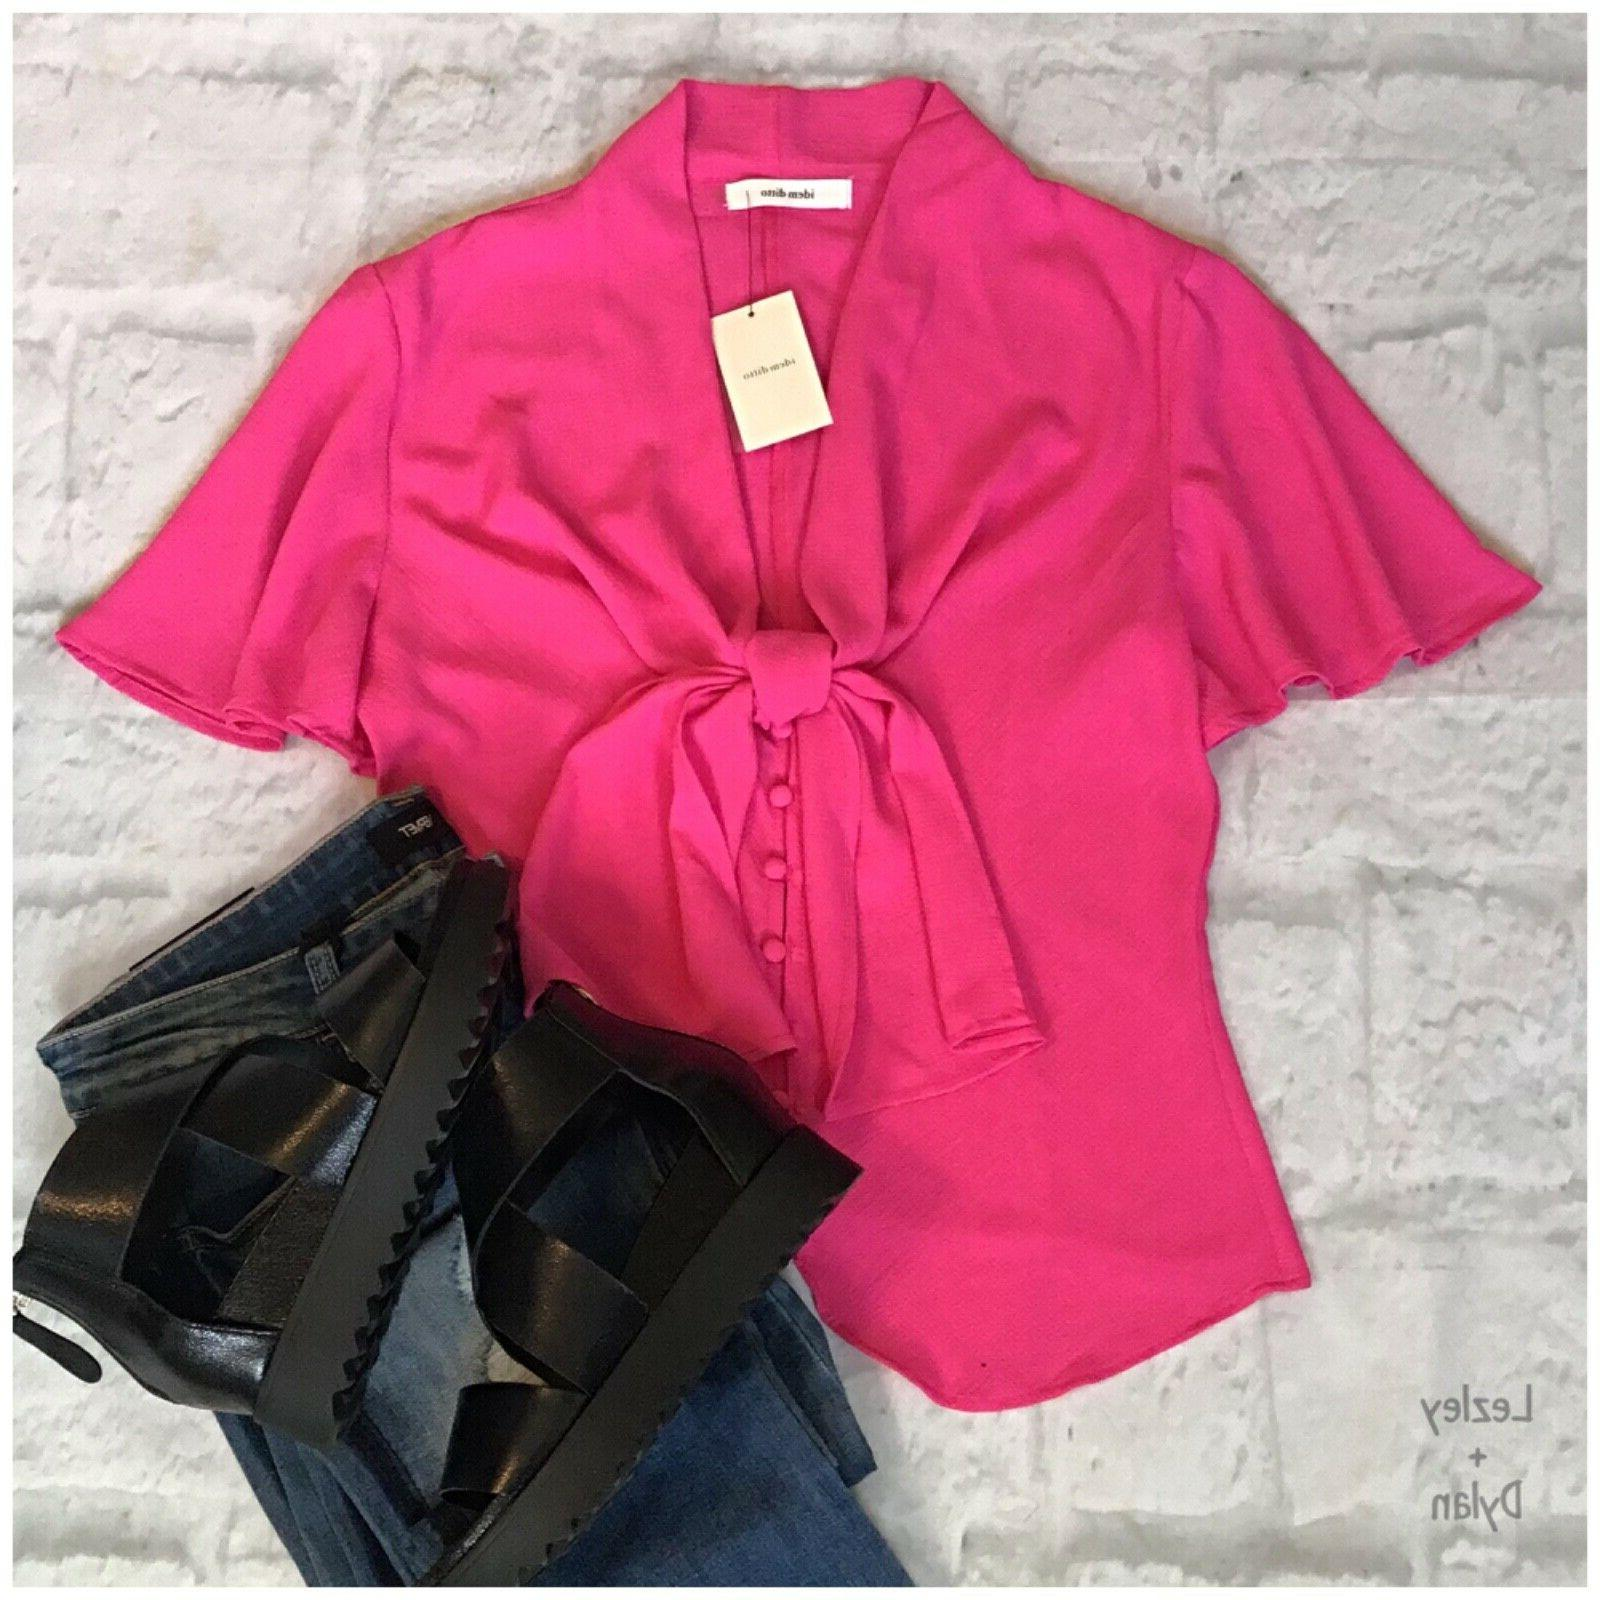 IDEM DITTO Bell Sleeves Top $48